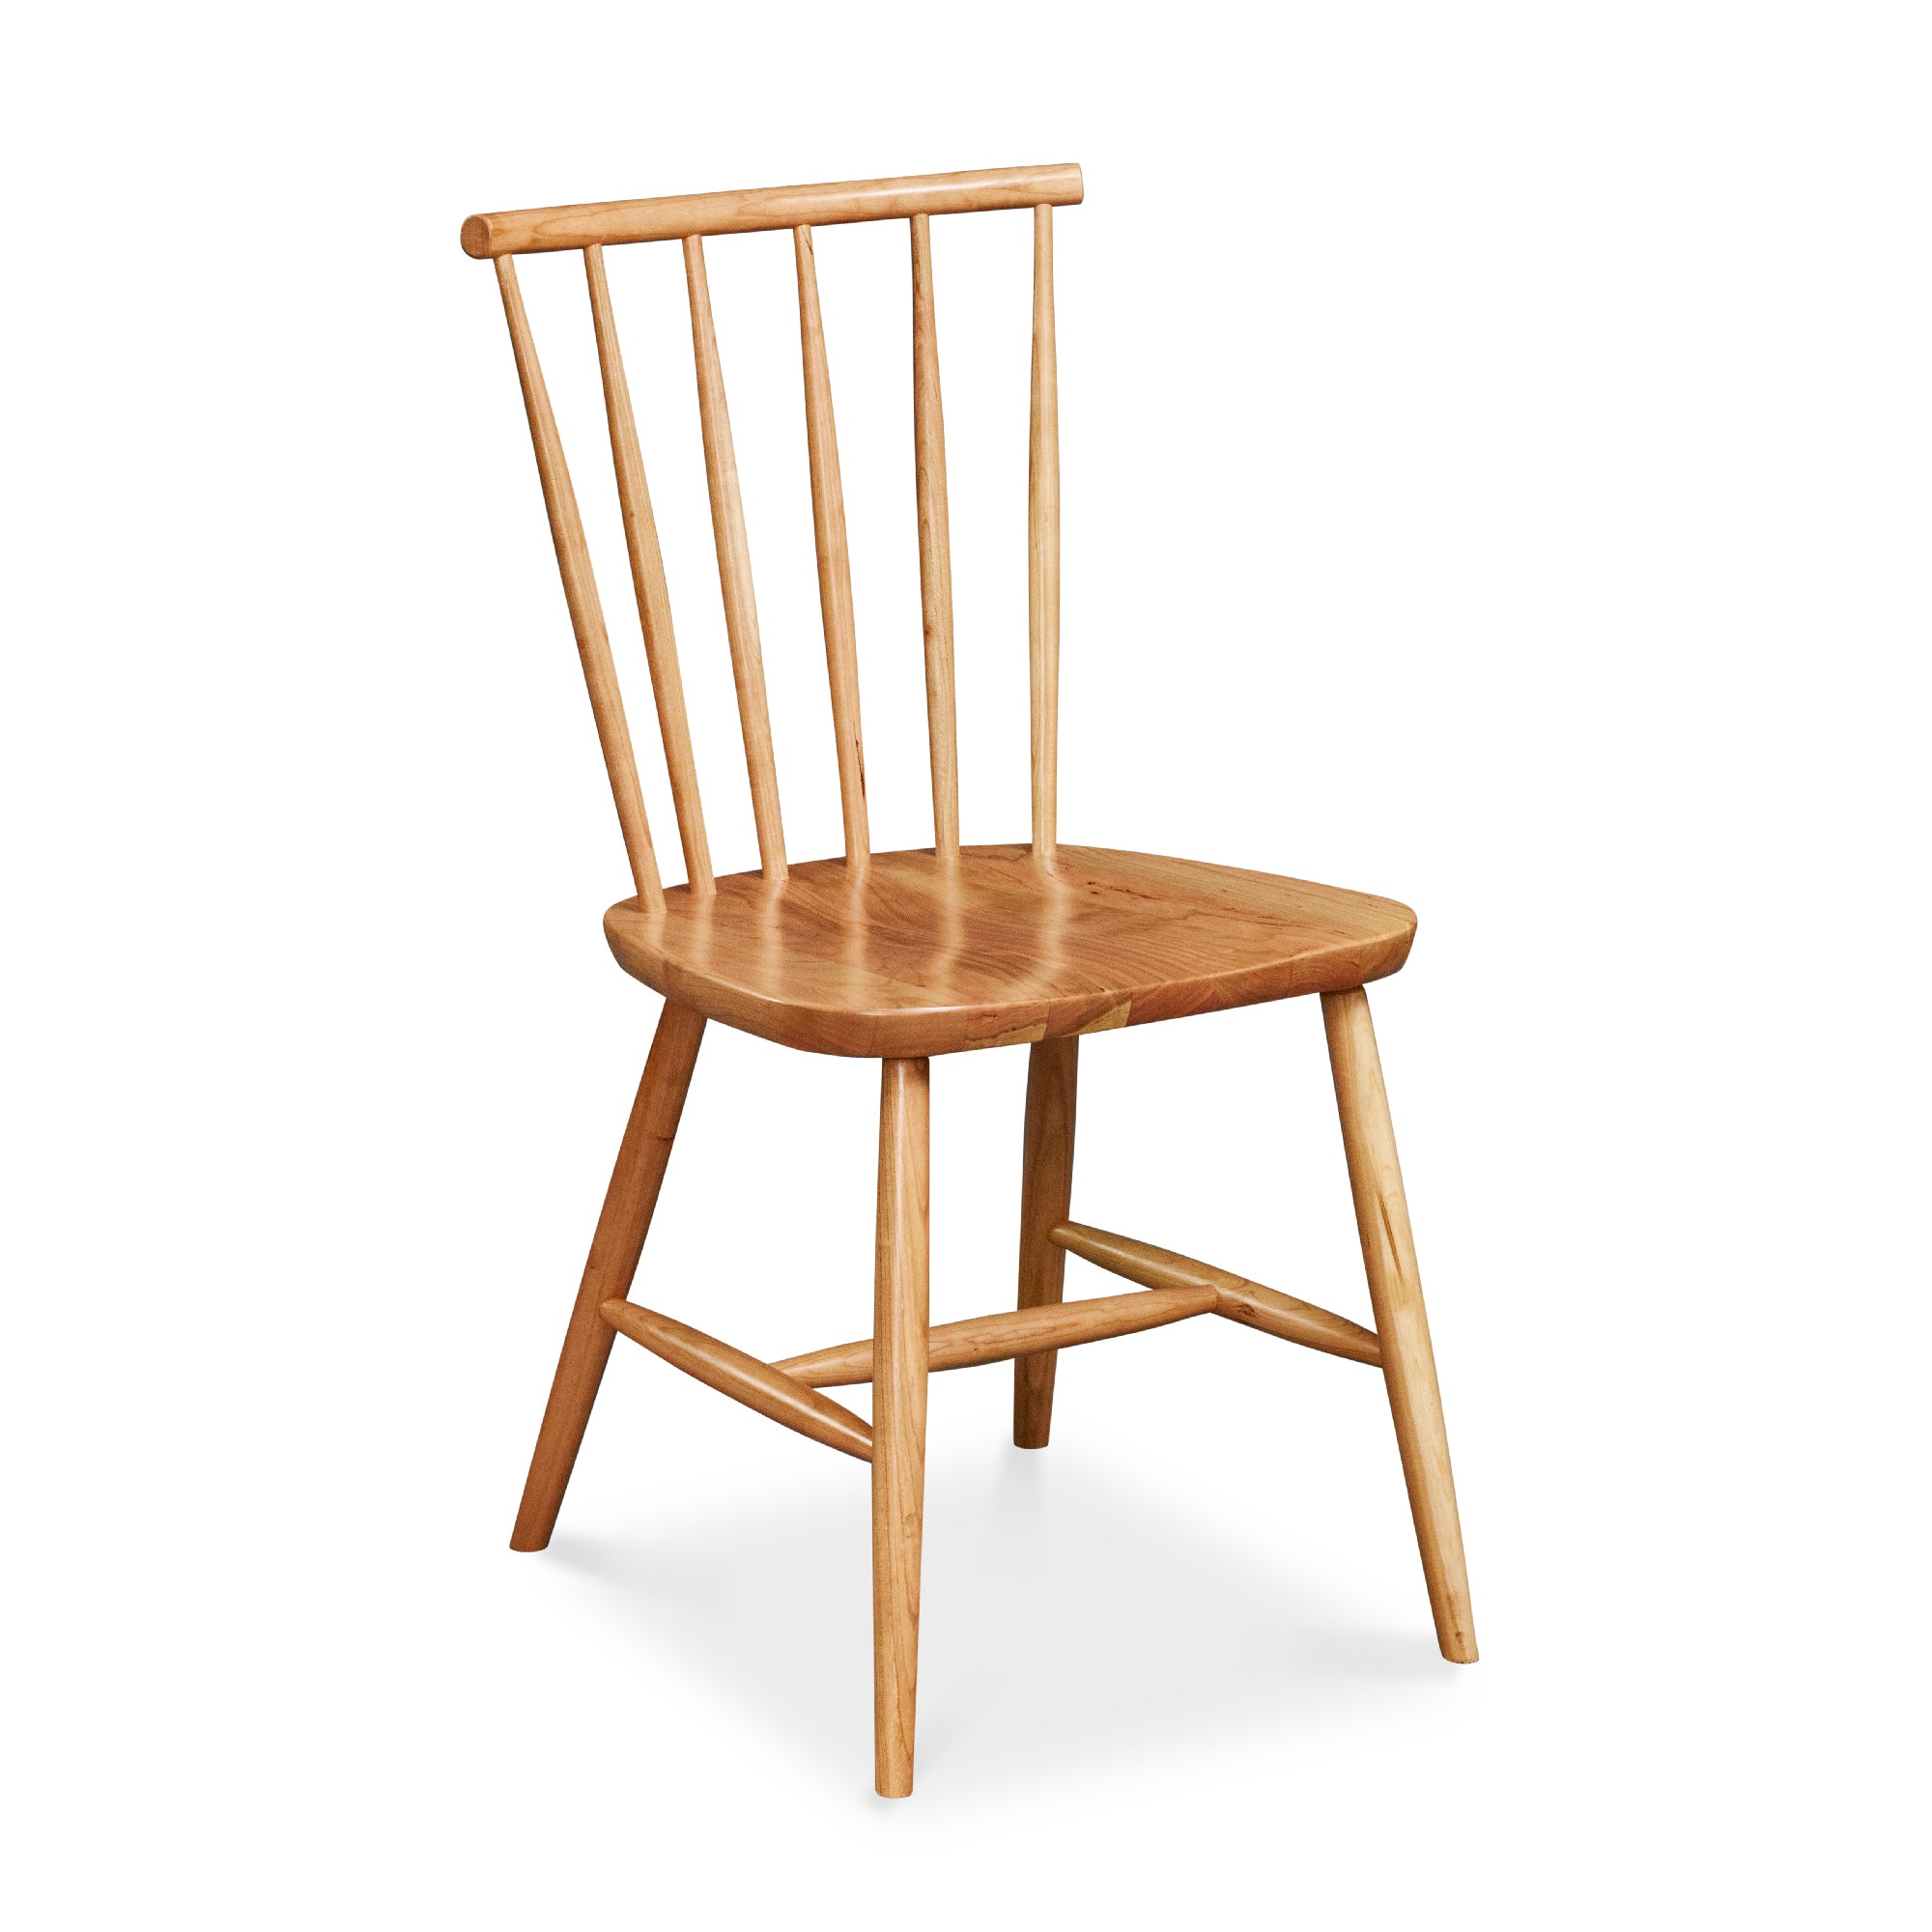 Windsor style chair with round crest in cherry